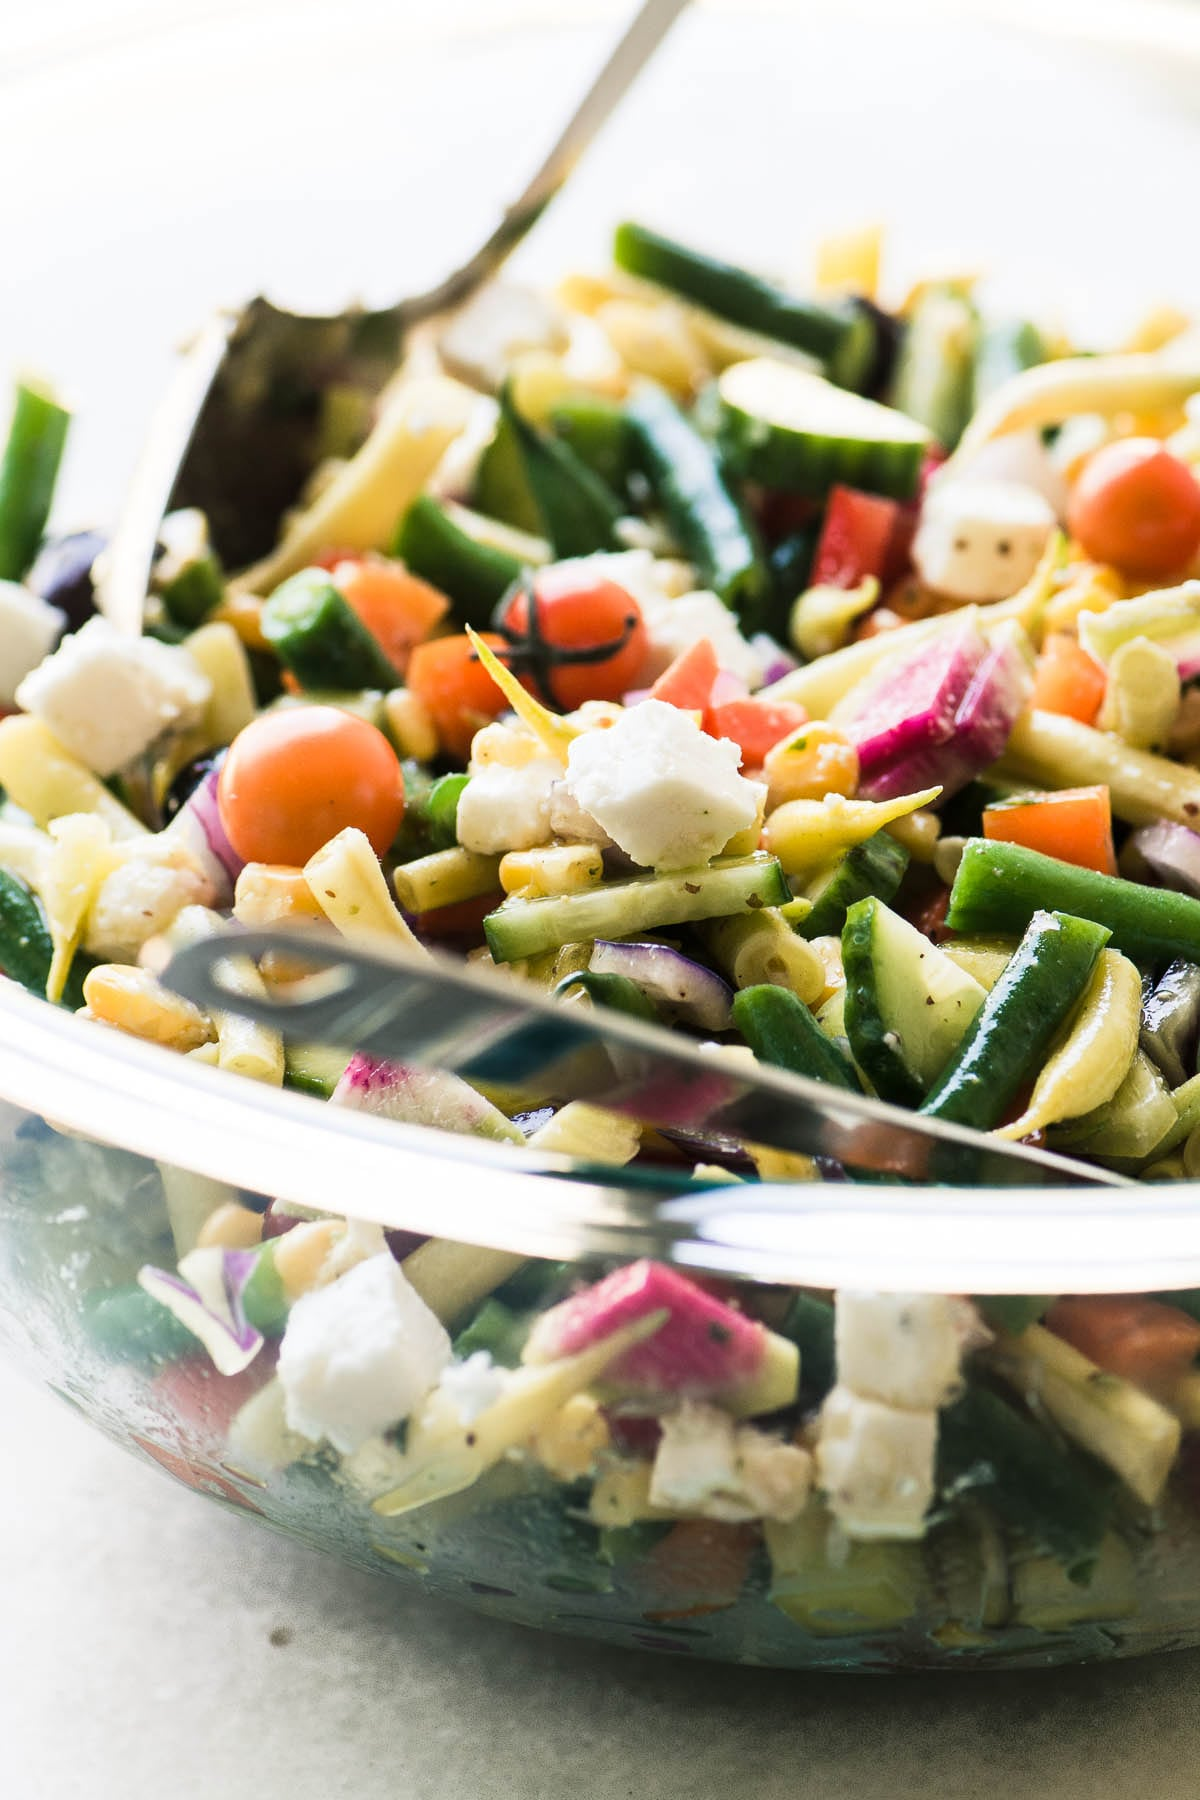 Farmers Market Vegetable Salad in a glass bowl